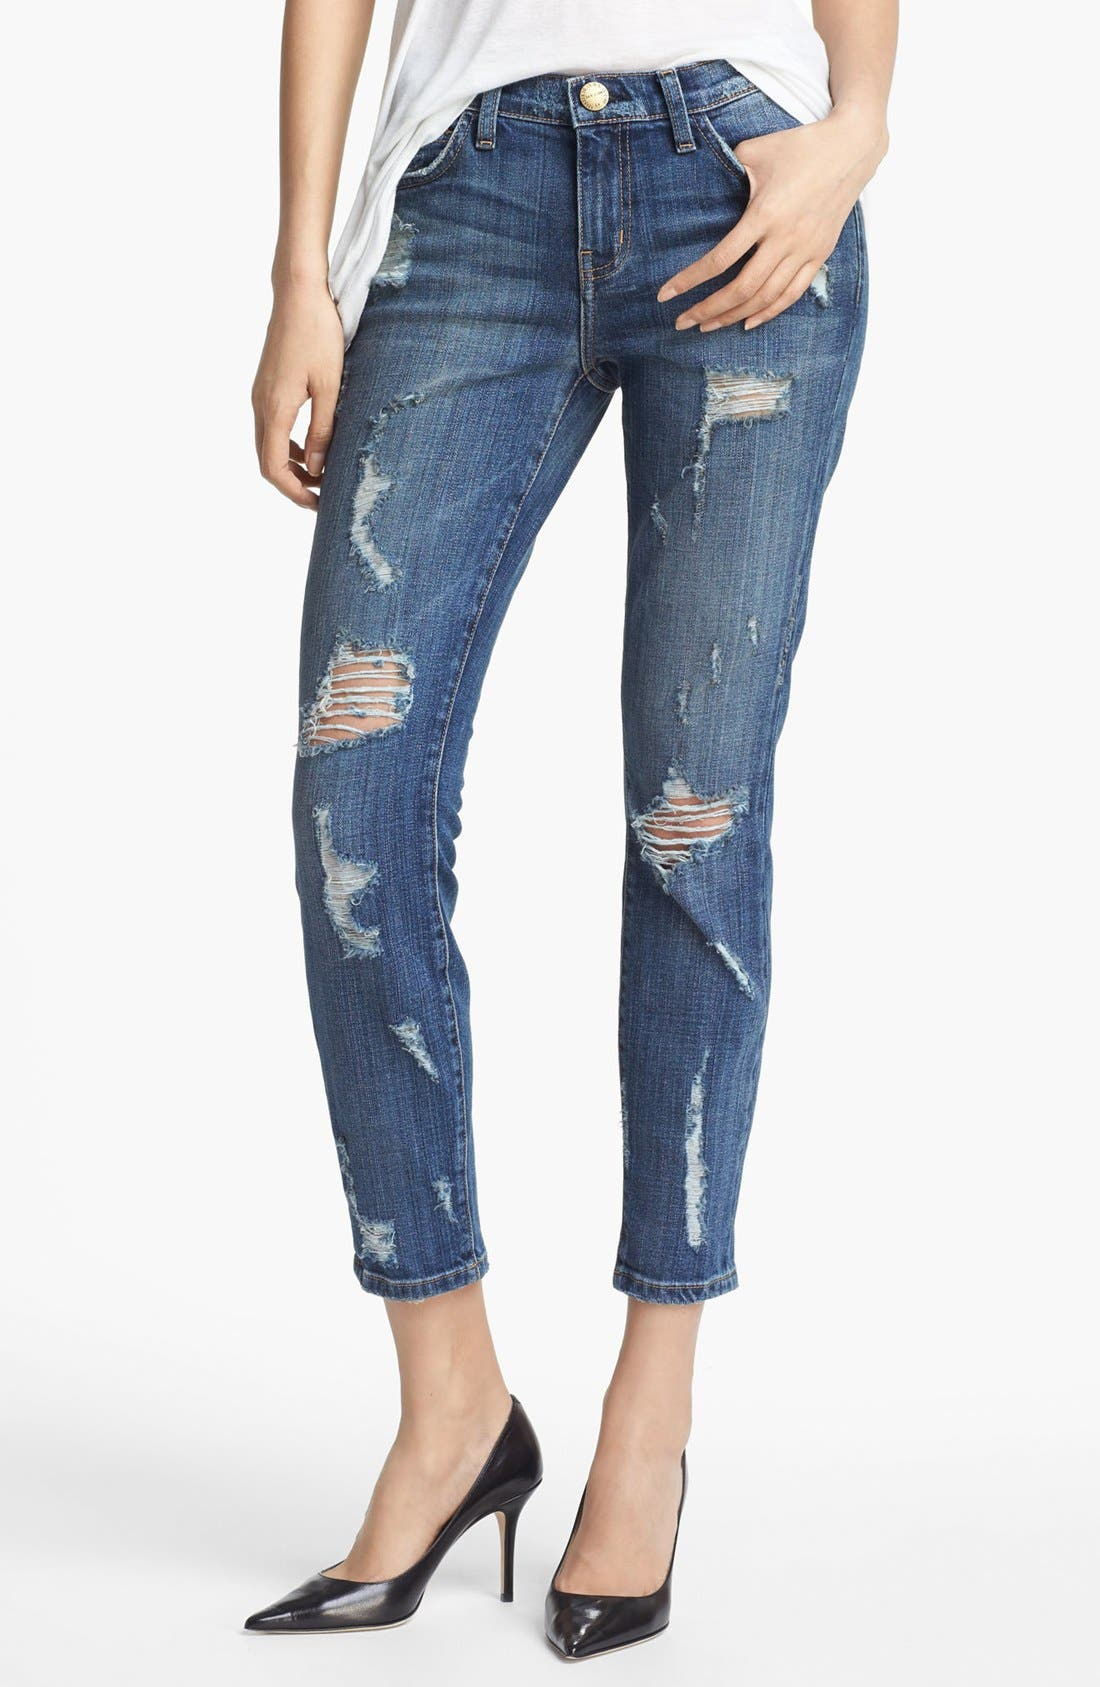 Main Image - Current/Elliott 'The Stiletto' Stretch Jeans (Dark Shredded)